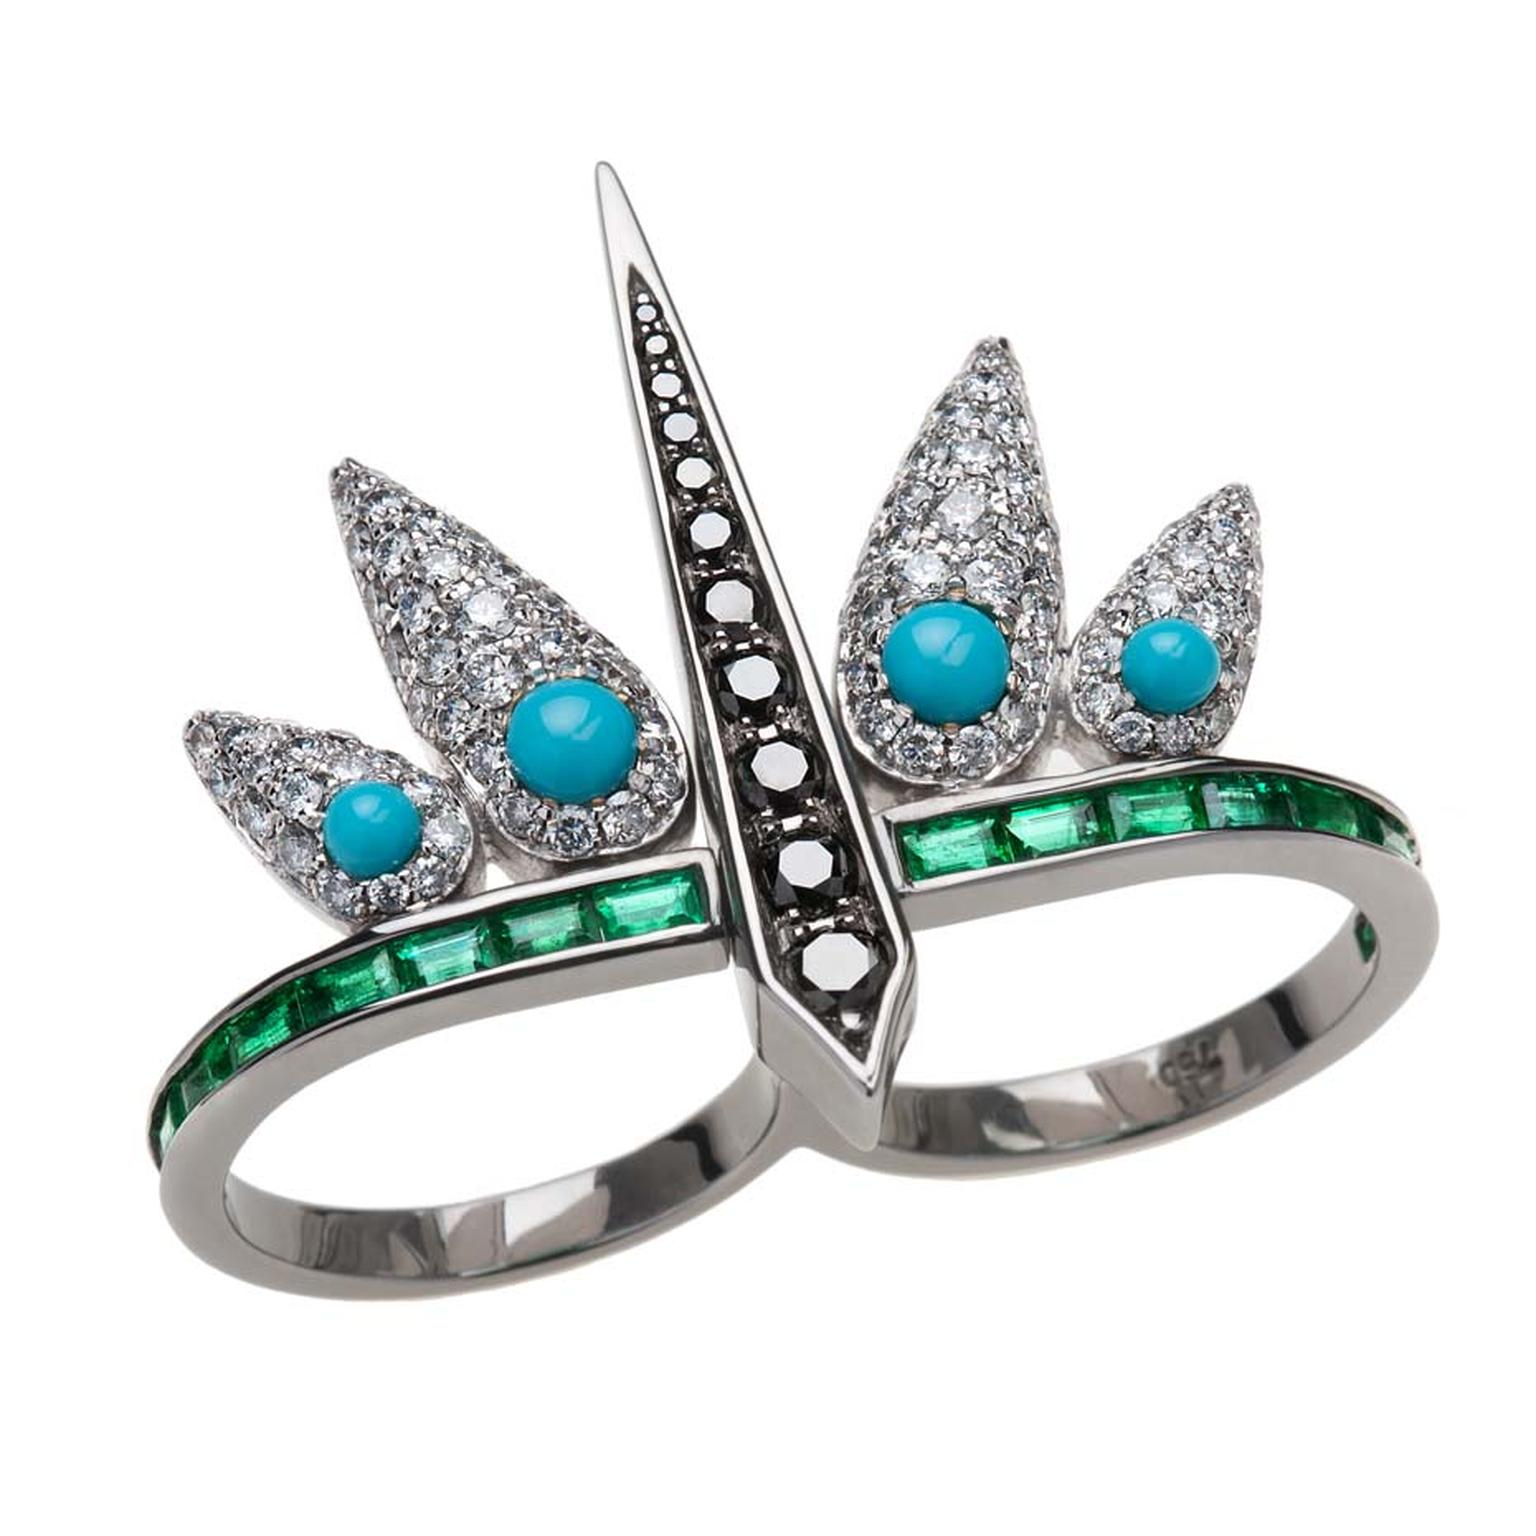 Nikos Koulis Spectrum collection ring with white and black diamonds, turquoises and baguette-cut emeralds.